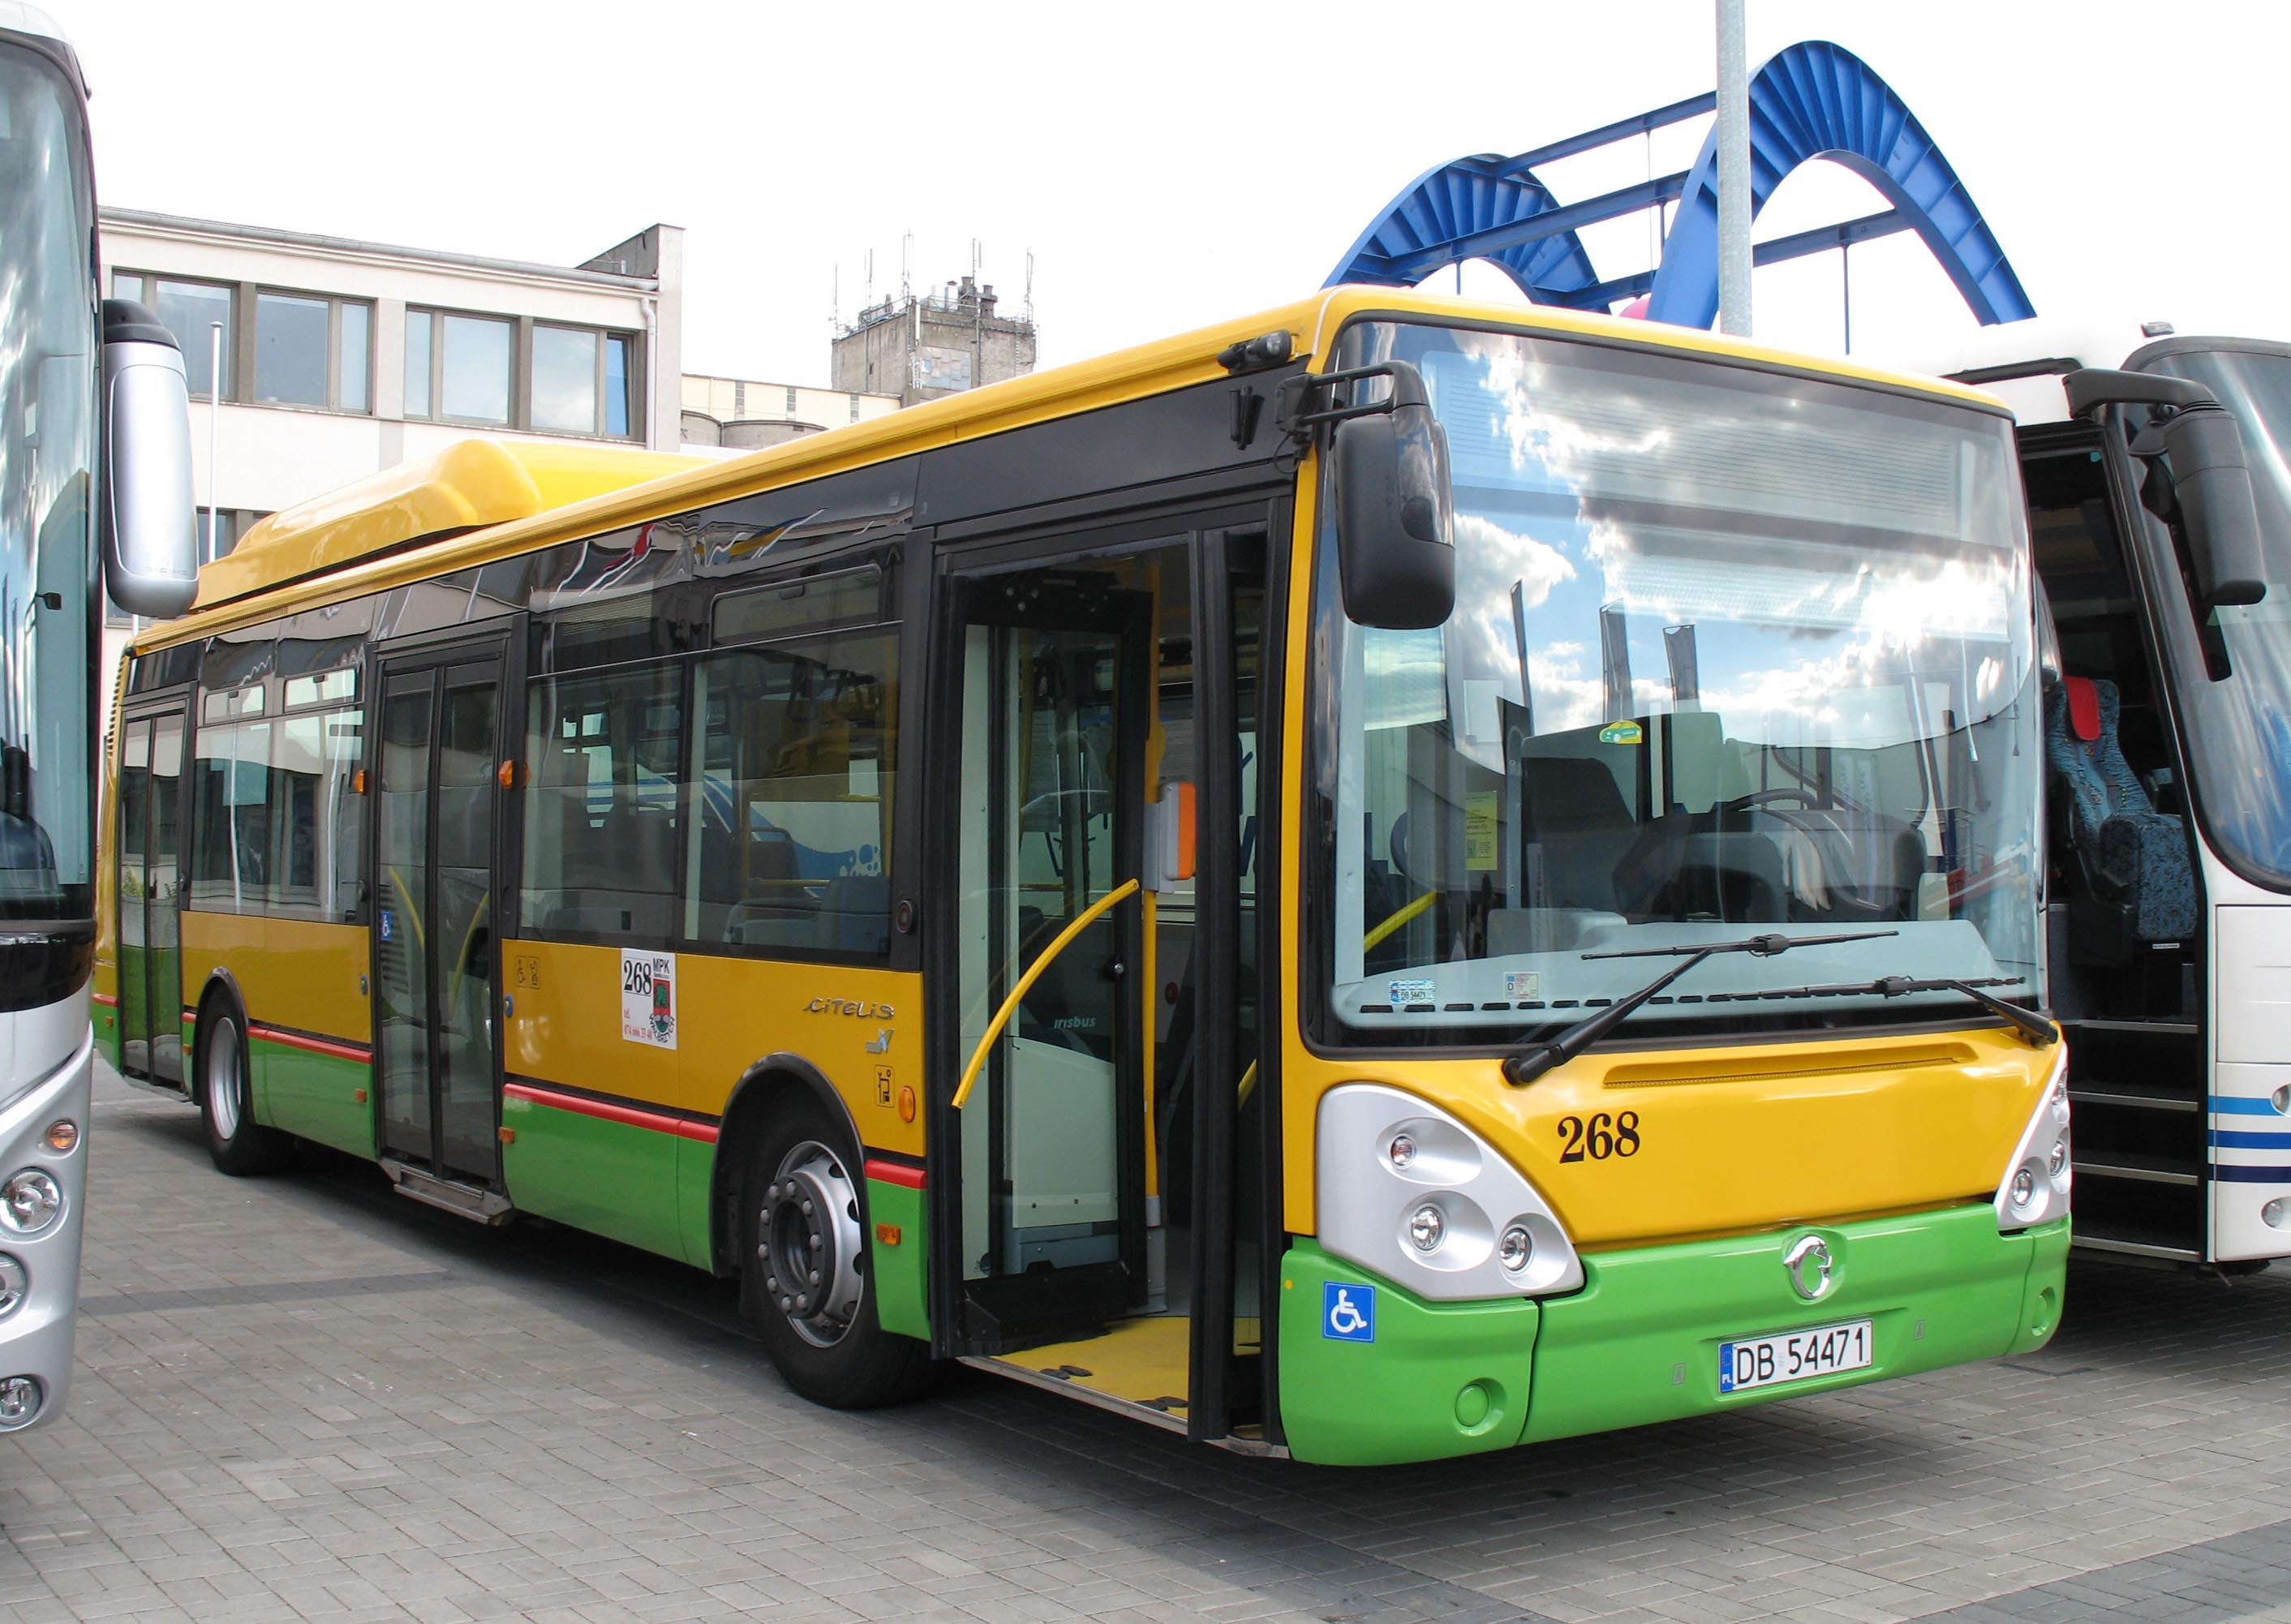 Irisbus citelis photo - 1